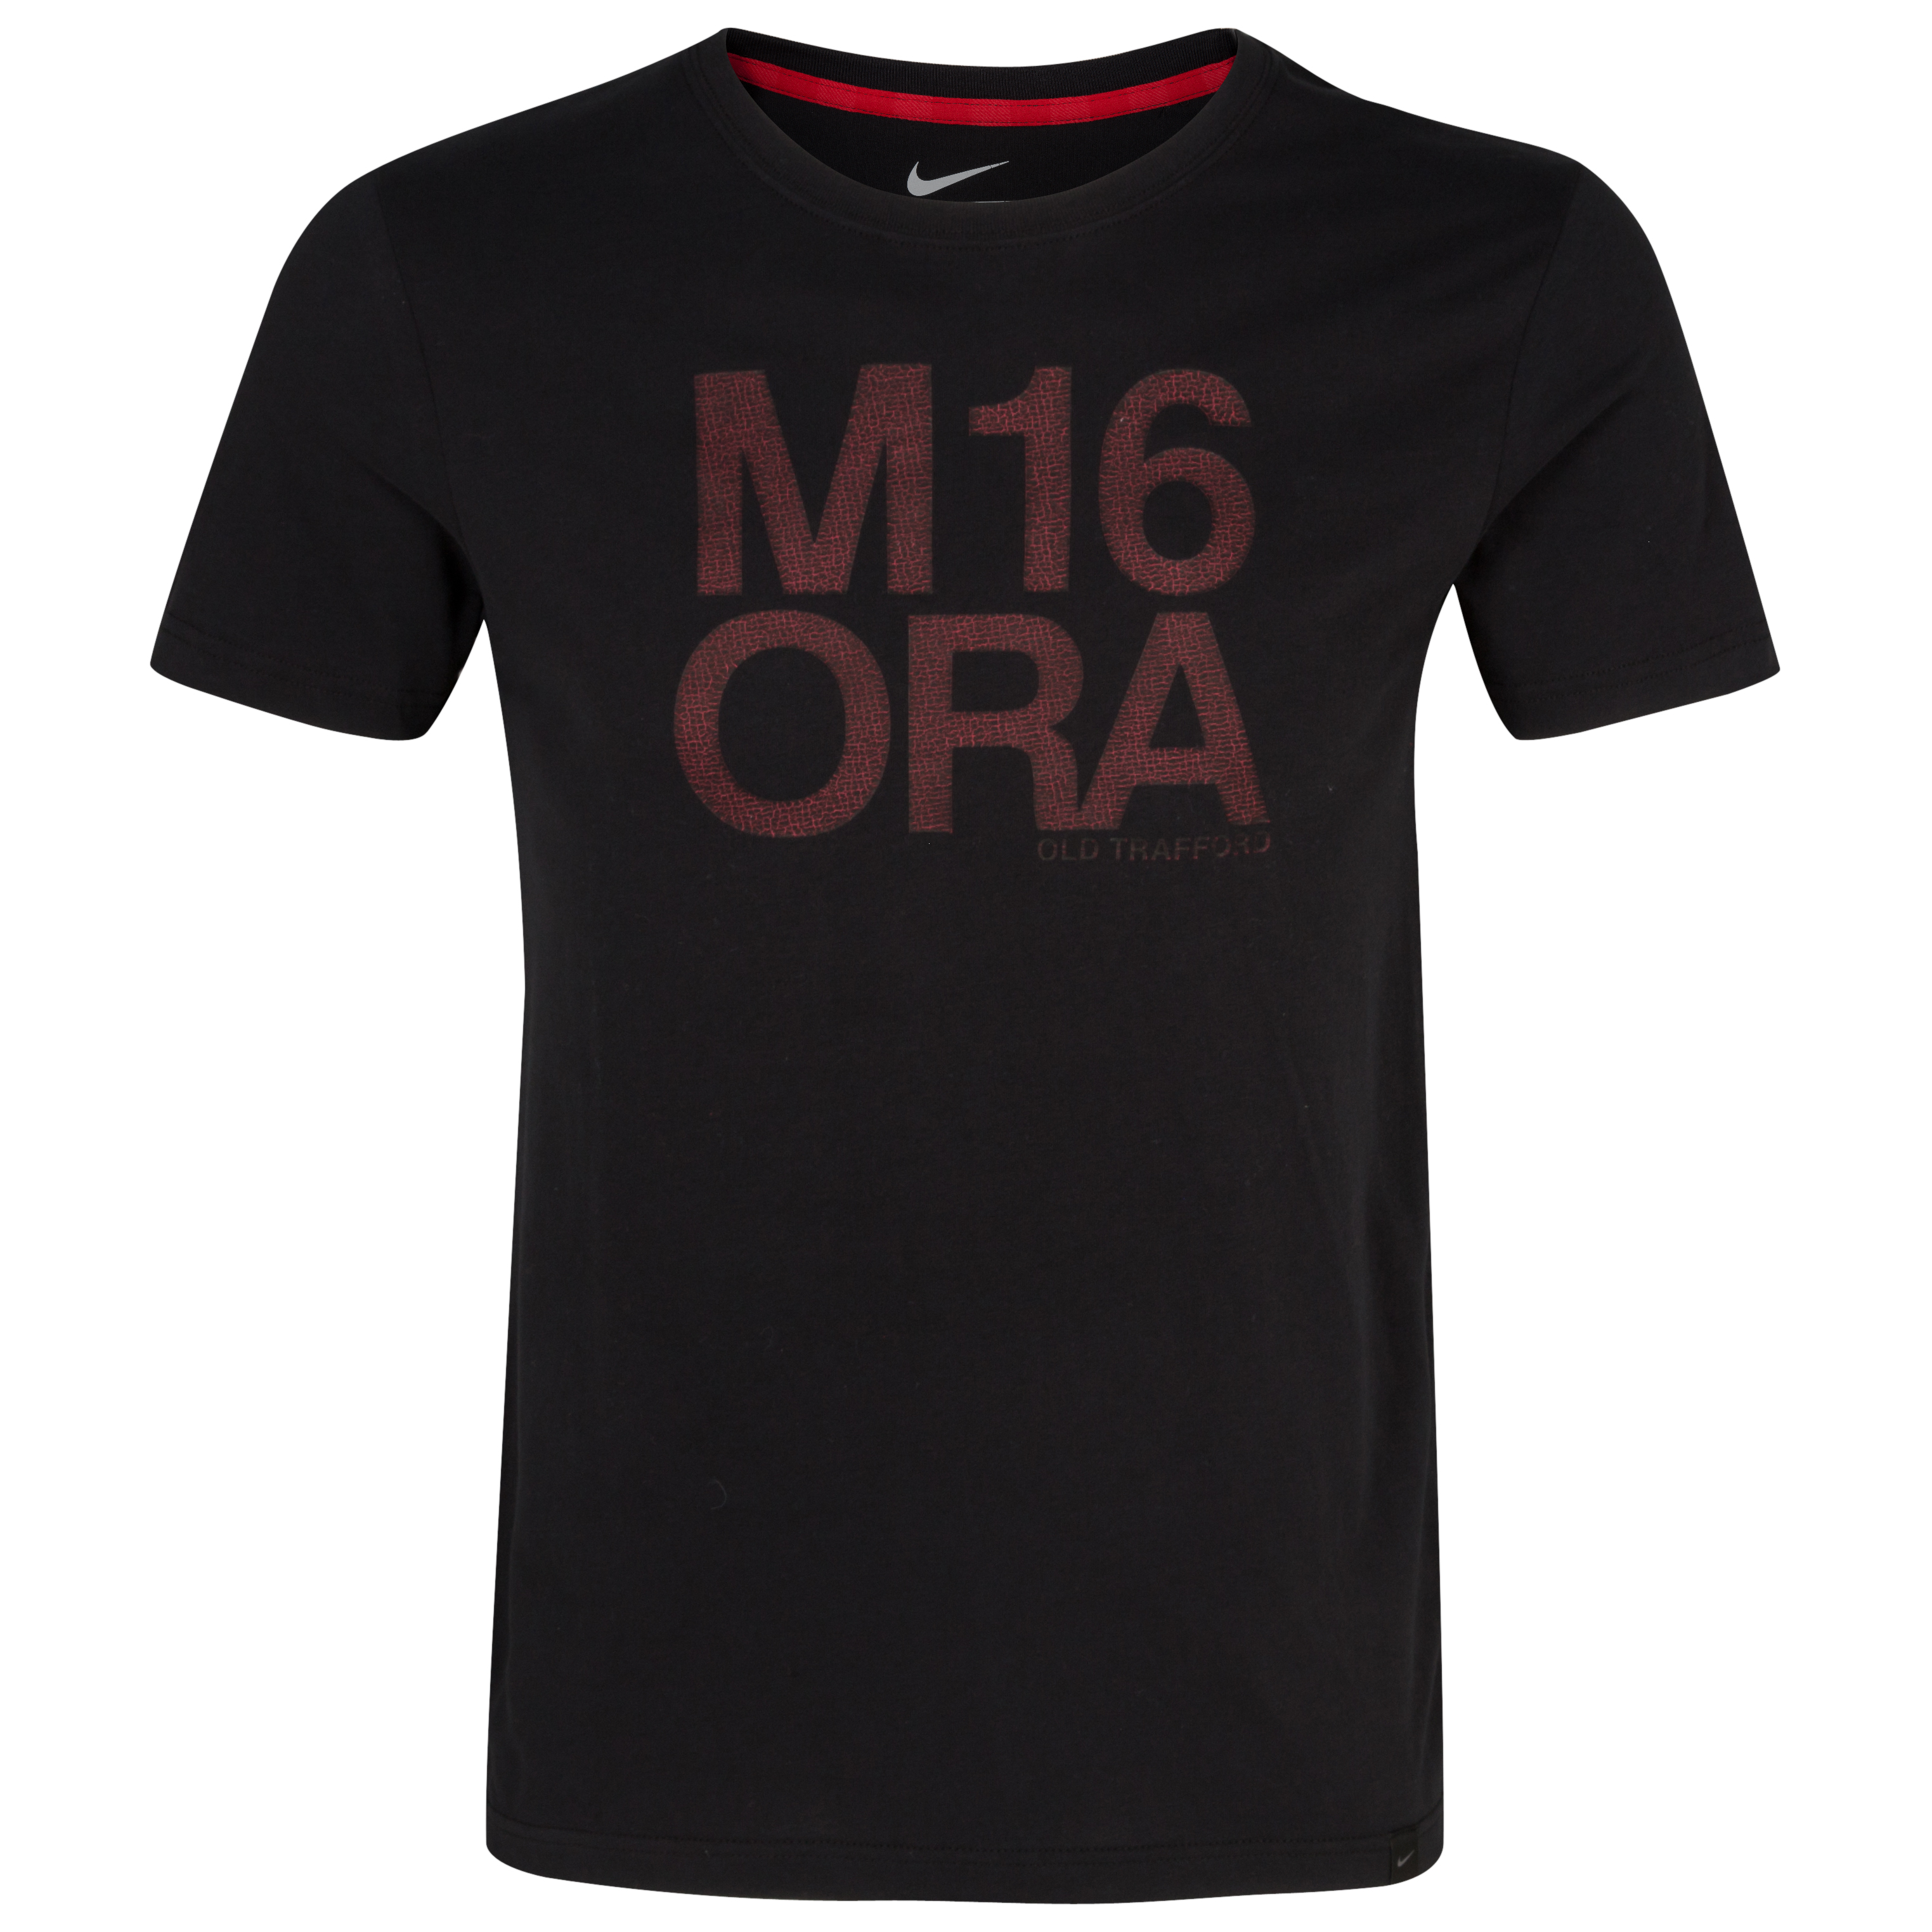 Manchester United Authentic T-Shirt - Black/Diablo Red